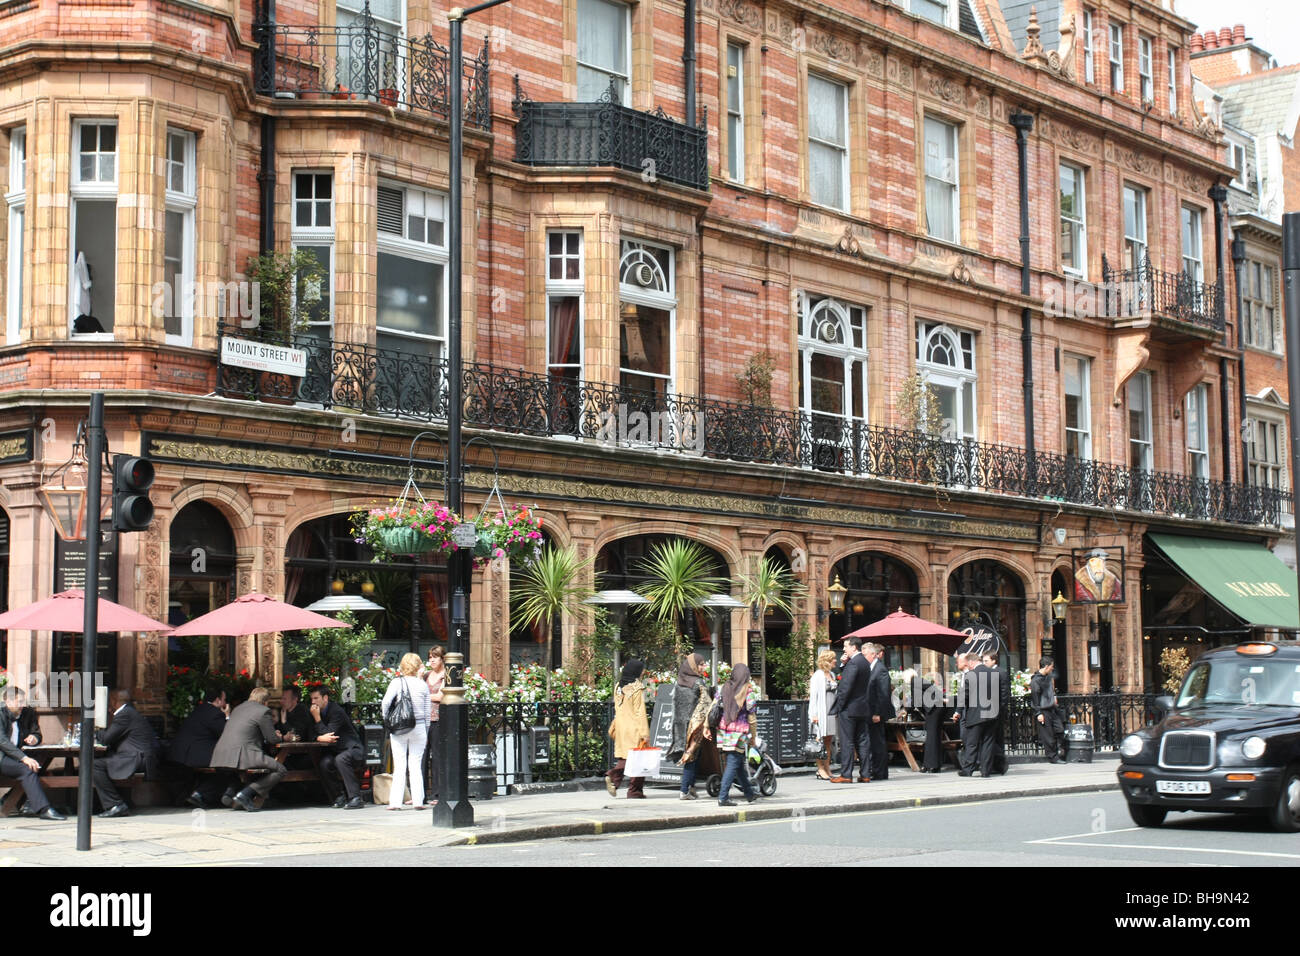 London, Mayfair district street with restaurant - Stock Image